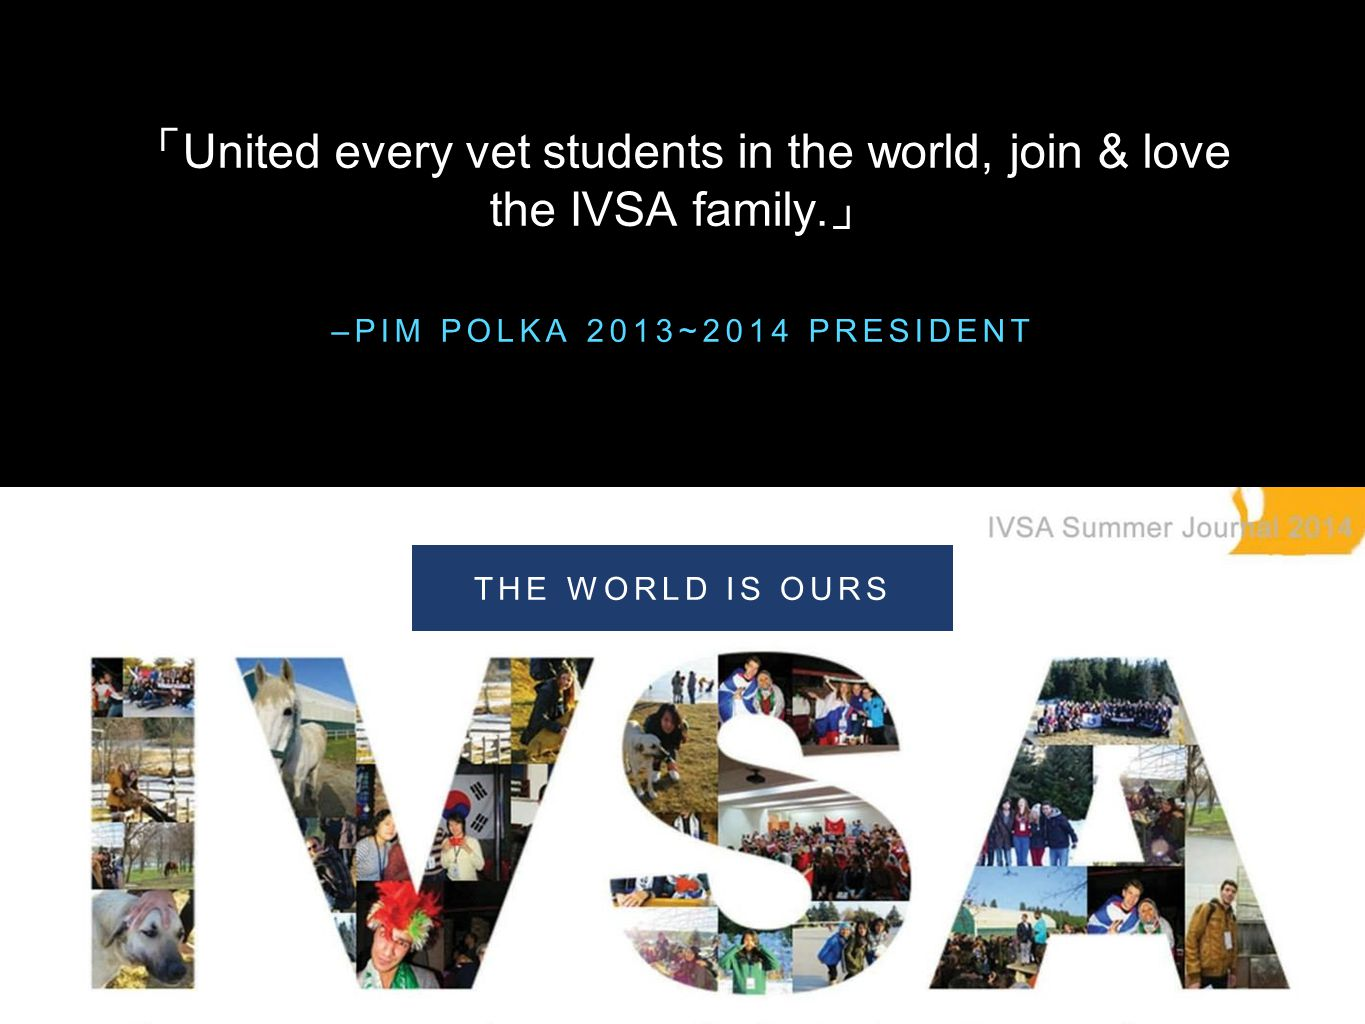 「United every vet students in the world, join & love the IVSA family.」